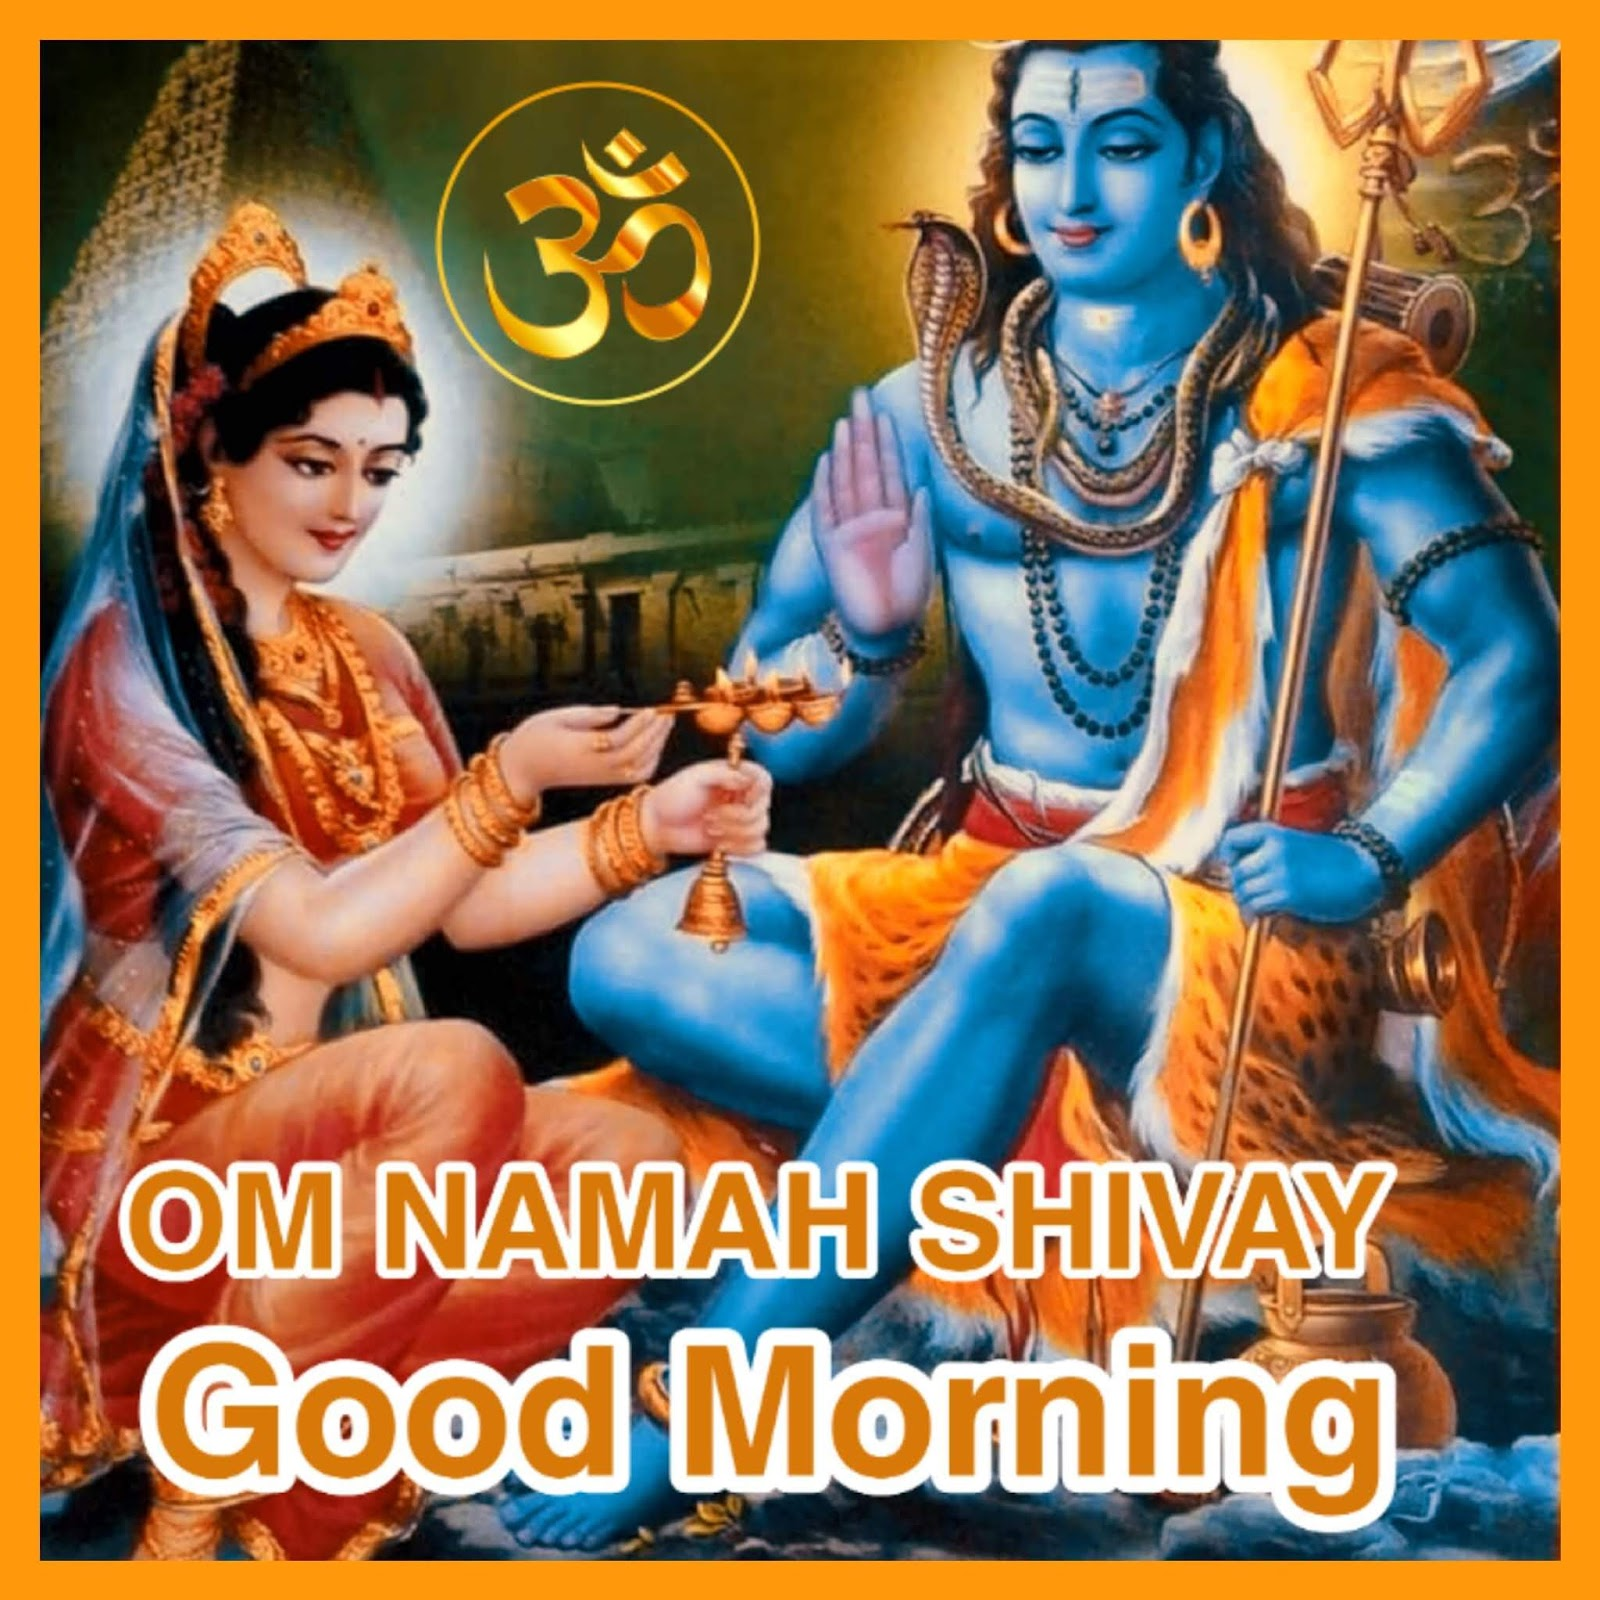 Good Morning Lord Shiva Images With Shubh Somvar Pictures